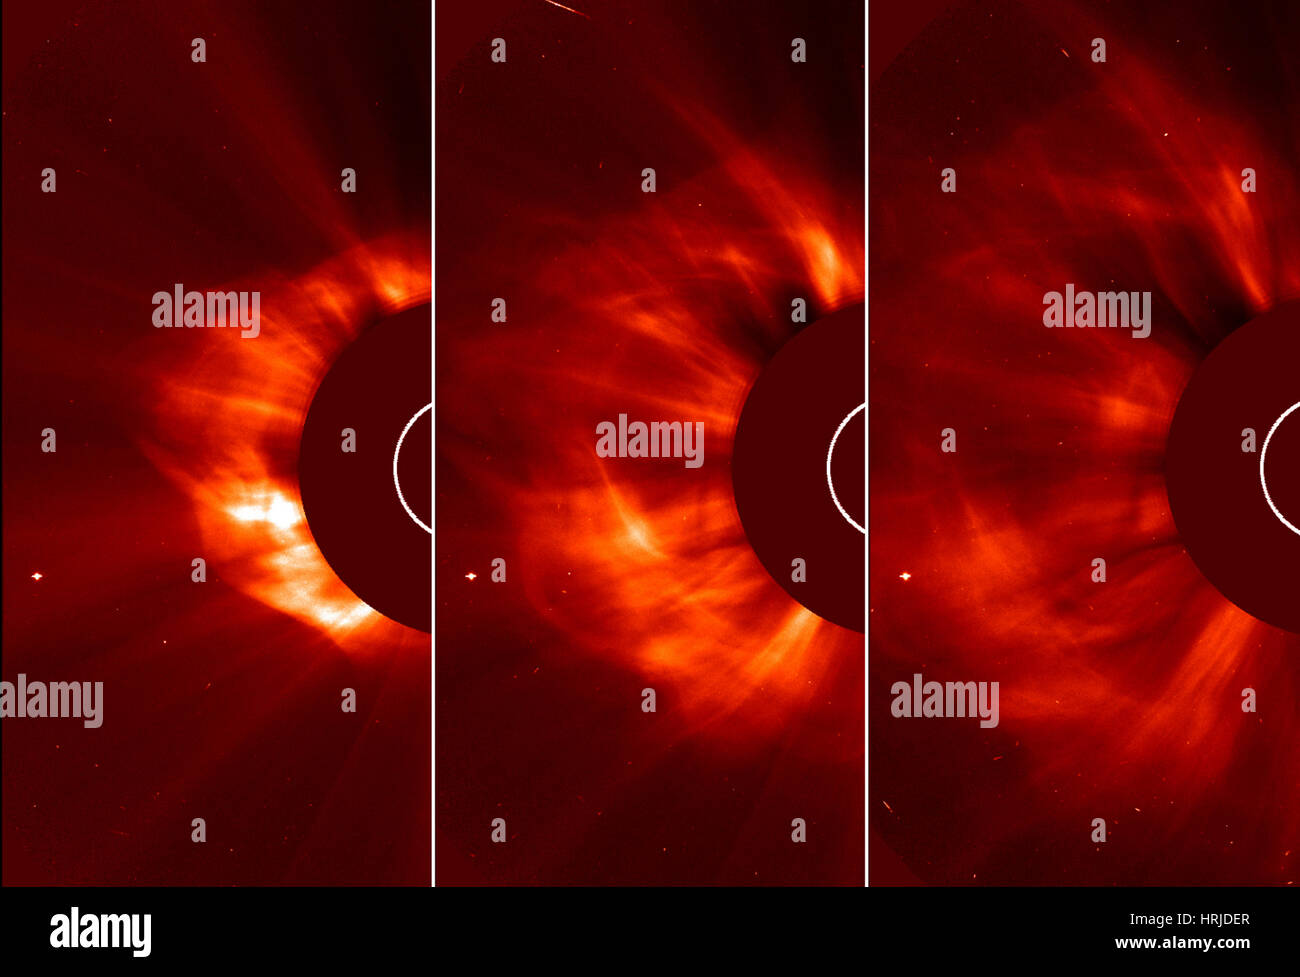 Sun Emits Coronal Mass Ejection, 2013 - Stock Image